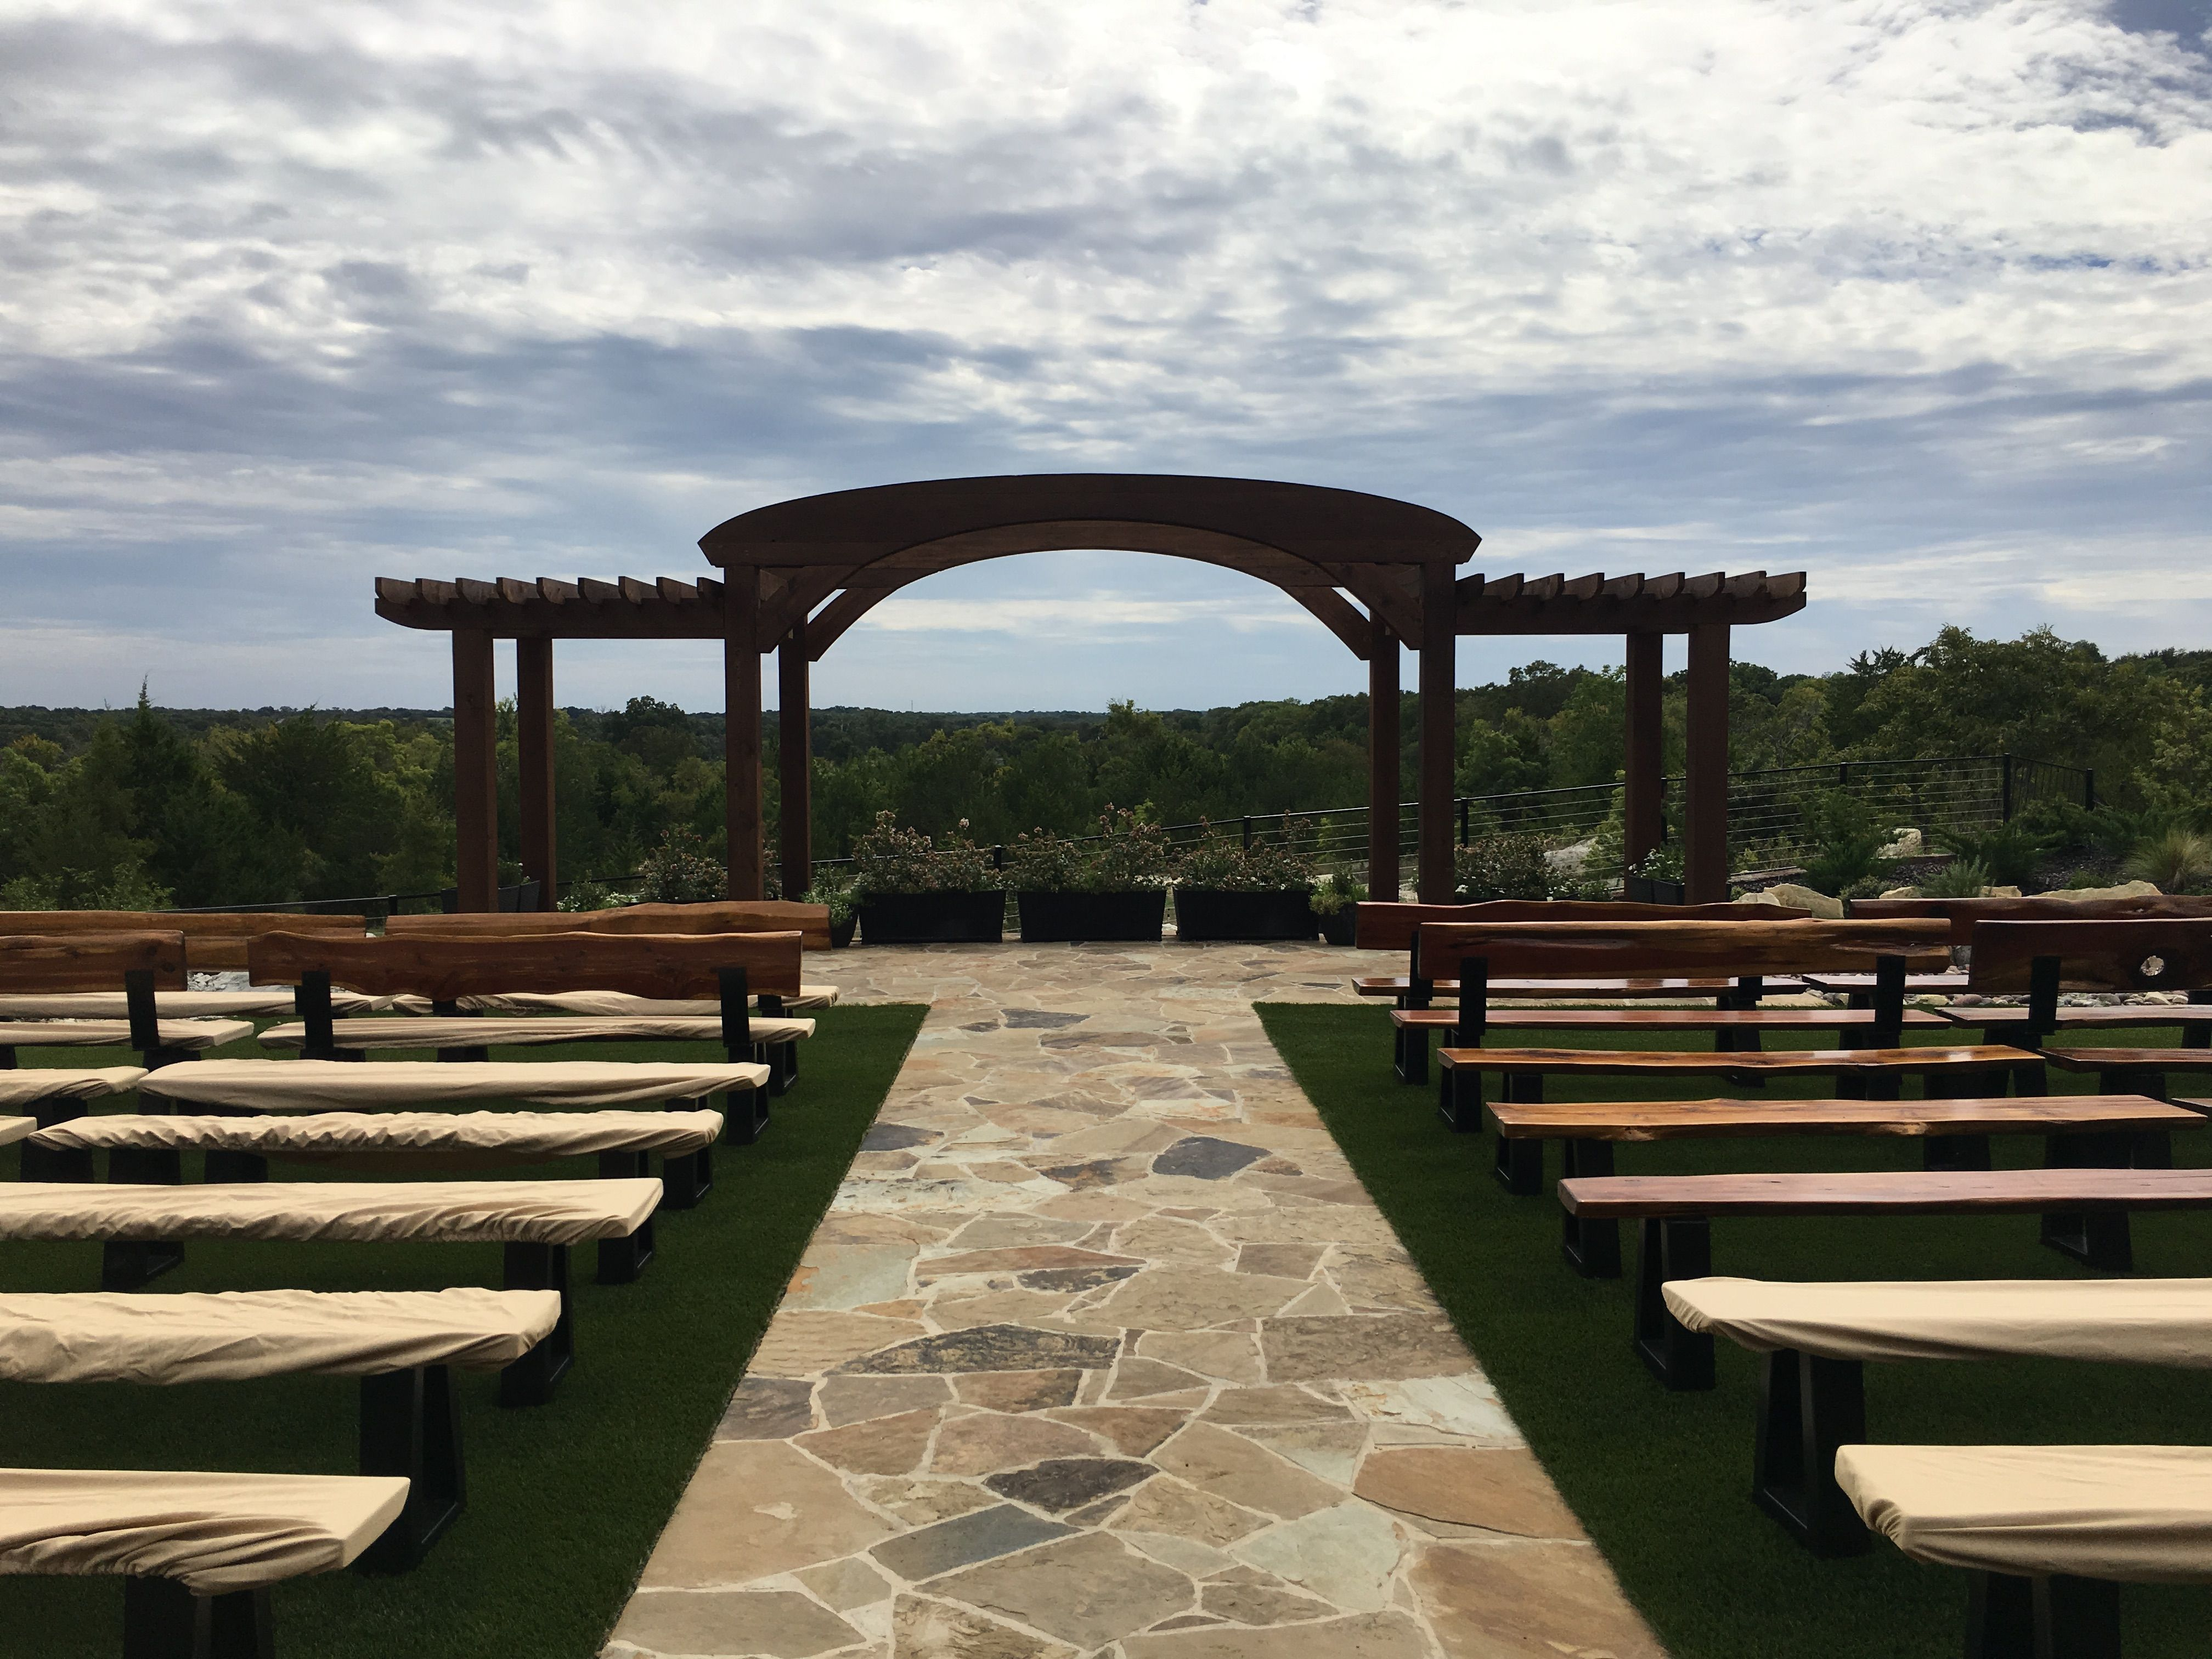 outdoor wedding venues in fort worth tx%0A Outdoor ceremony area at Stone Crest Venue near McKinney  TX   DFW rustic  venue